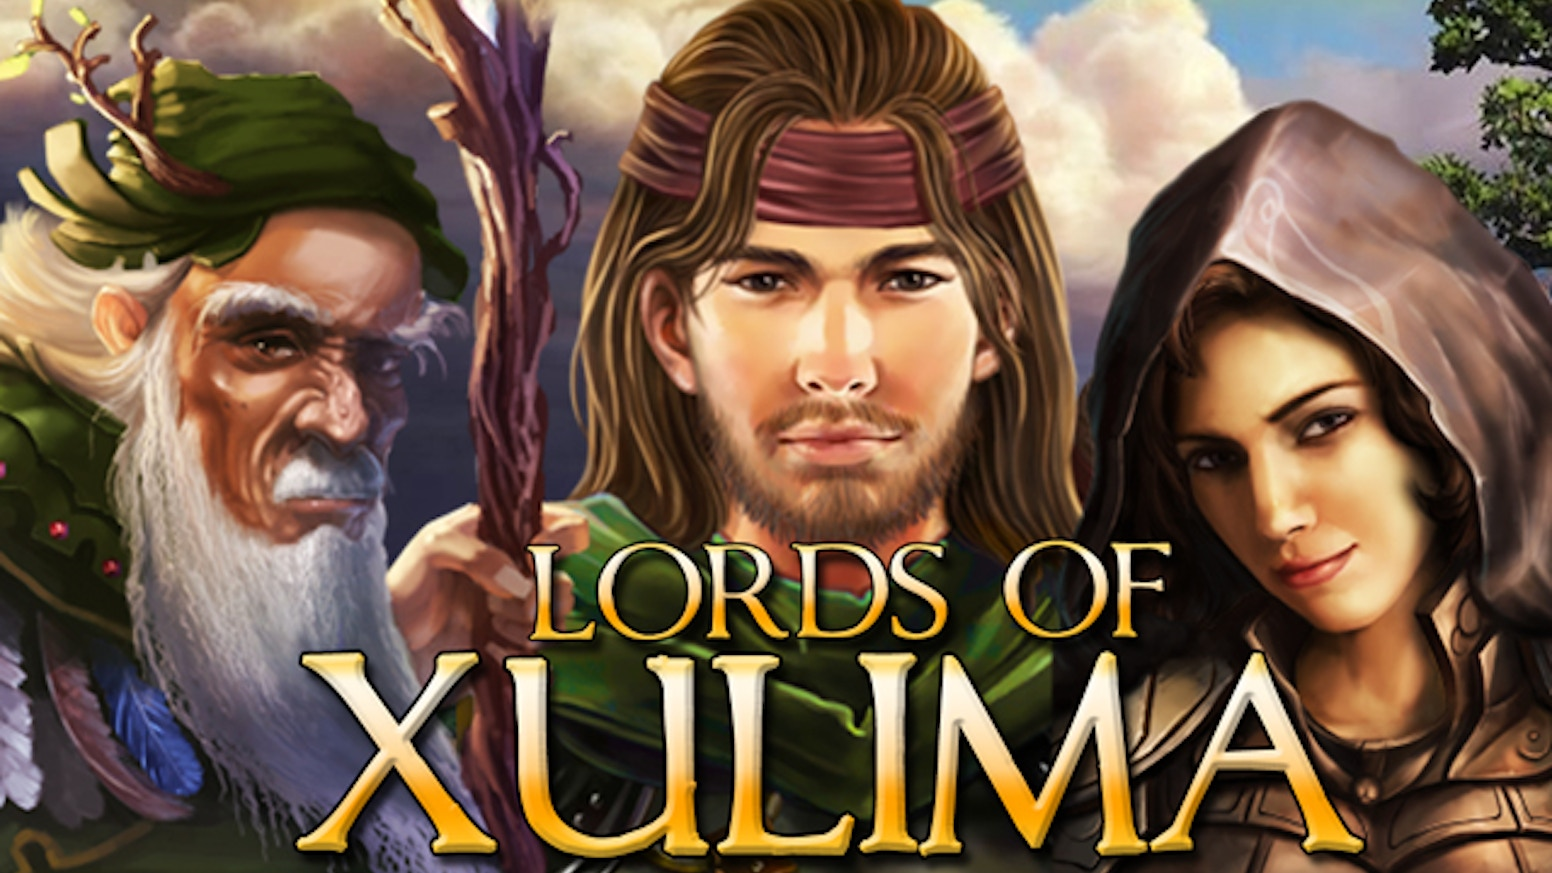 Lords of Xulima - An Epic Story of Gods and Humans by